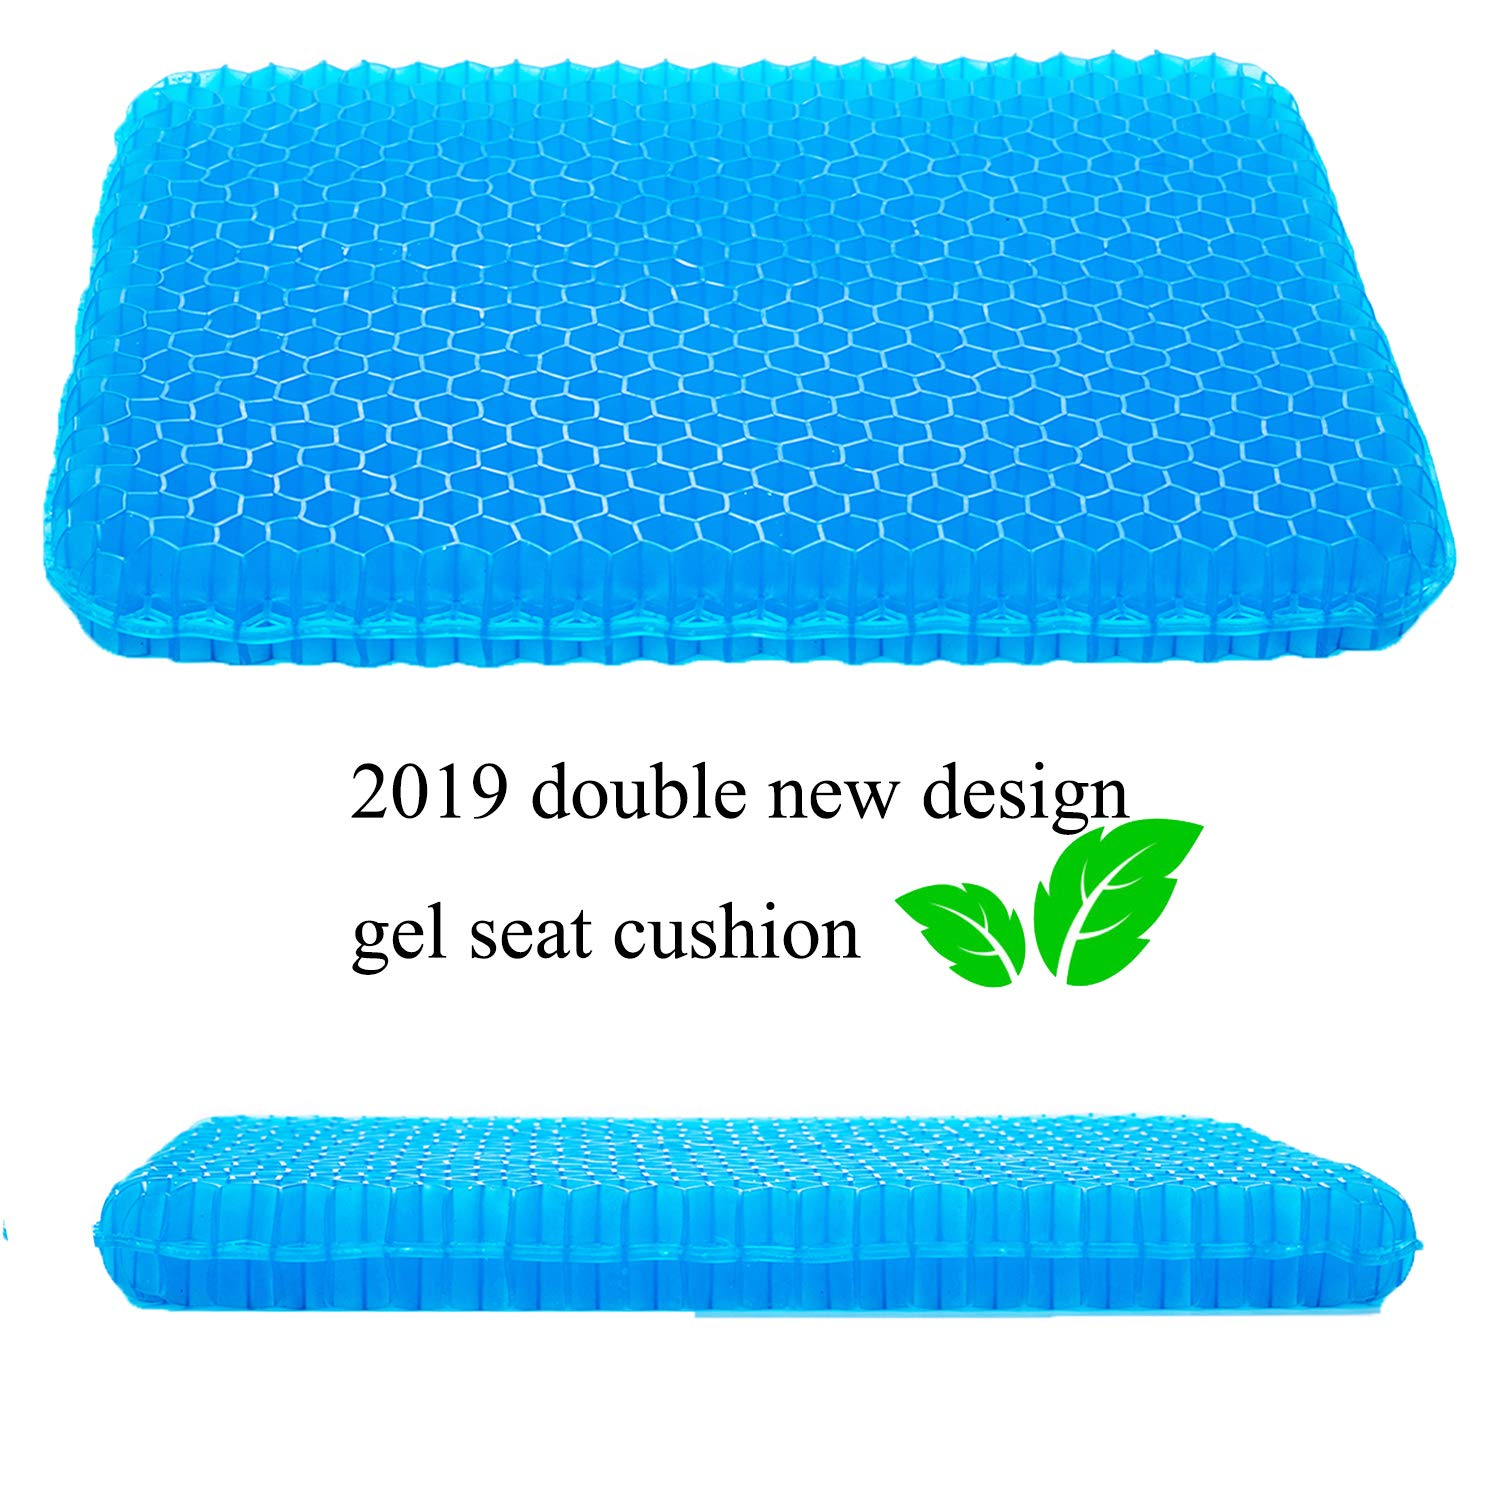 SESEAT Gel Seat Cushion Non Slip Cover Chair Cushion for Office, Truck Driver, Car, Wheelchair, Double Design Seat Cushion